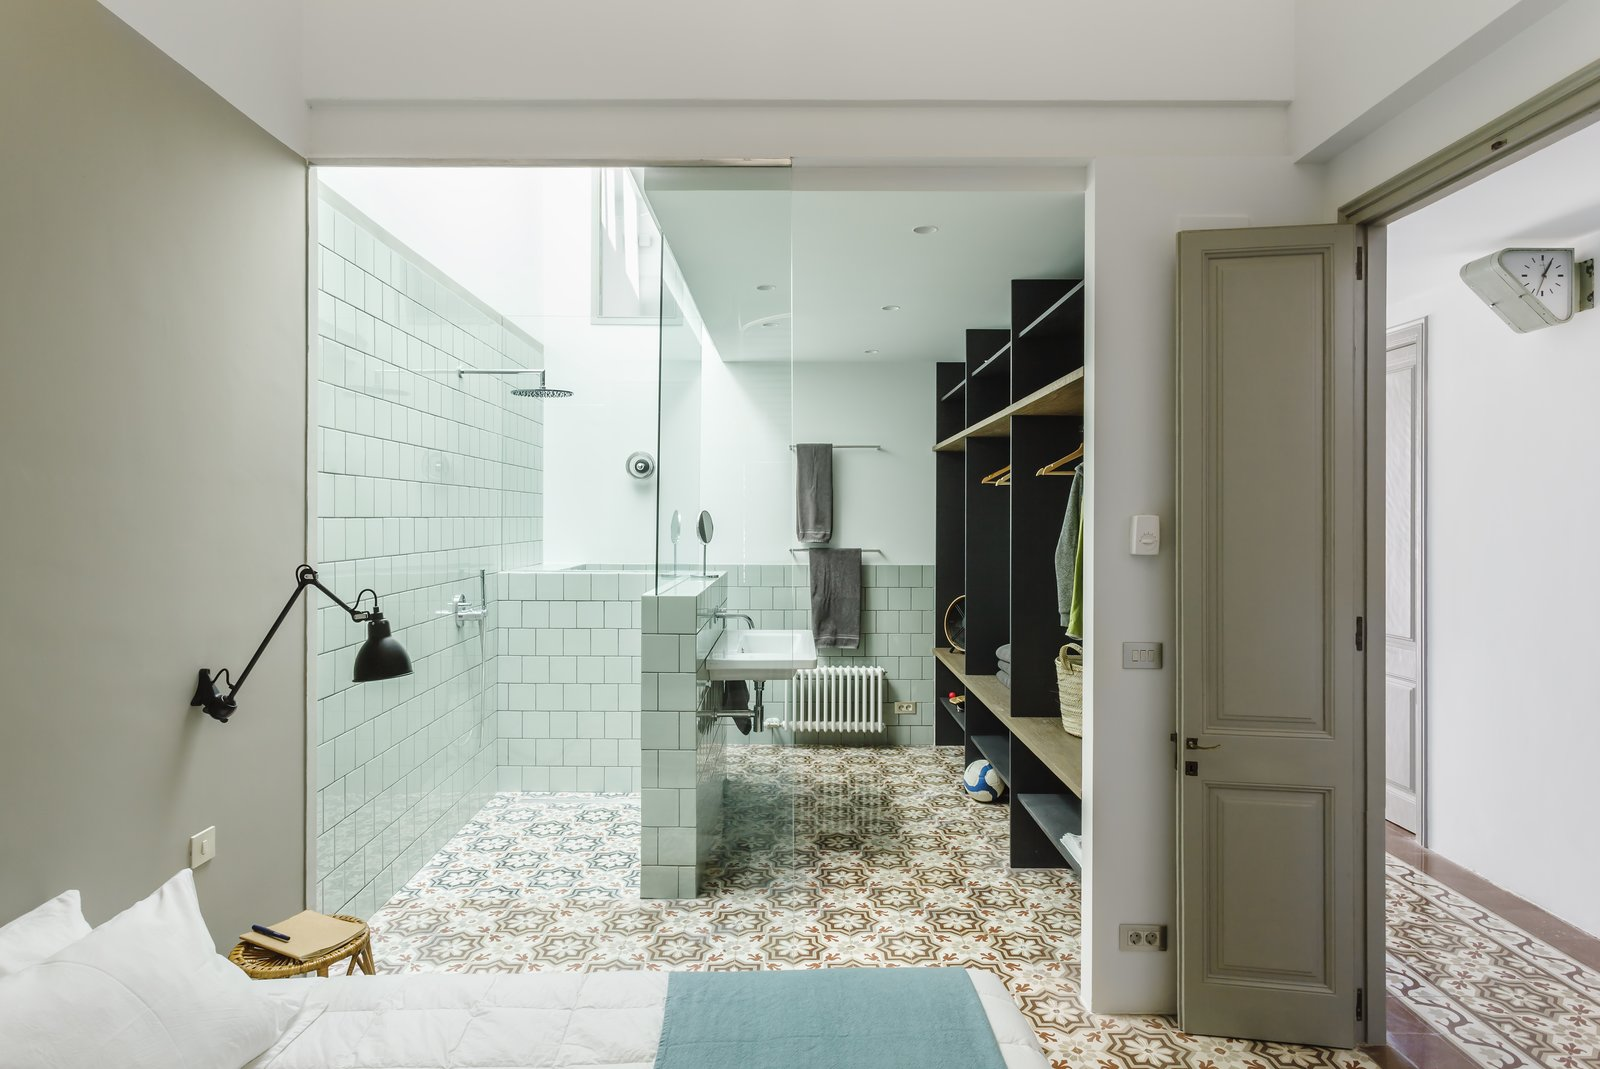 Bath, Ceramic Tile, Wall Mount, Open, and Porcelain Tile  Best Bath Open Porcelain Tile Photos from A Careful Renovation Brings New Life to a Family's Heritage Home on the Spanish Coast